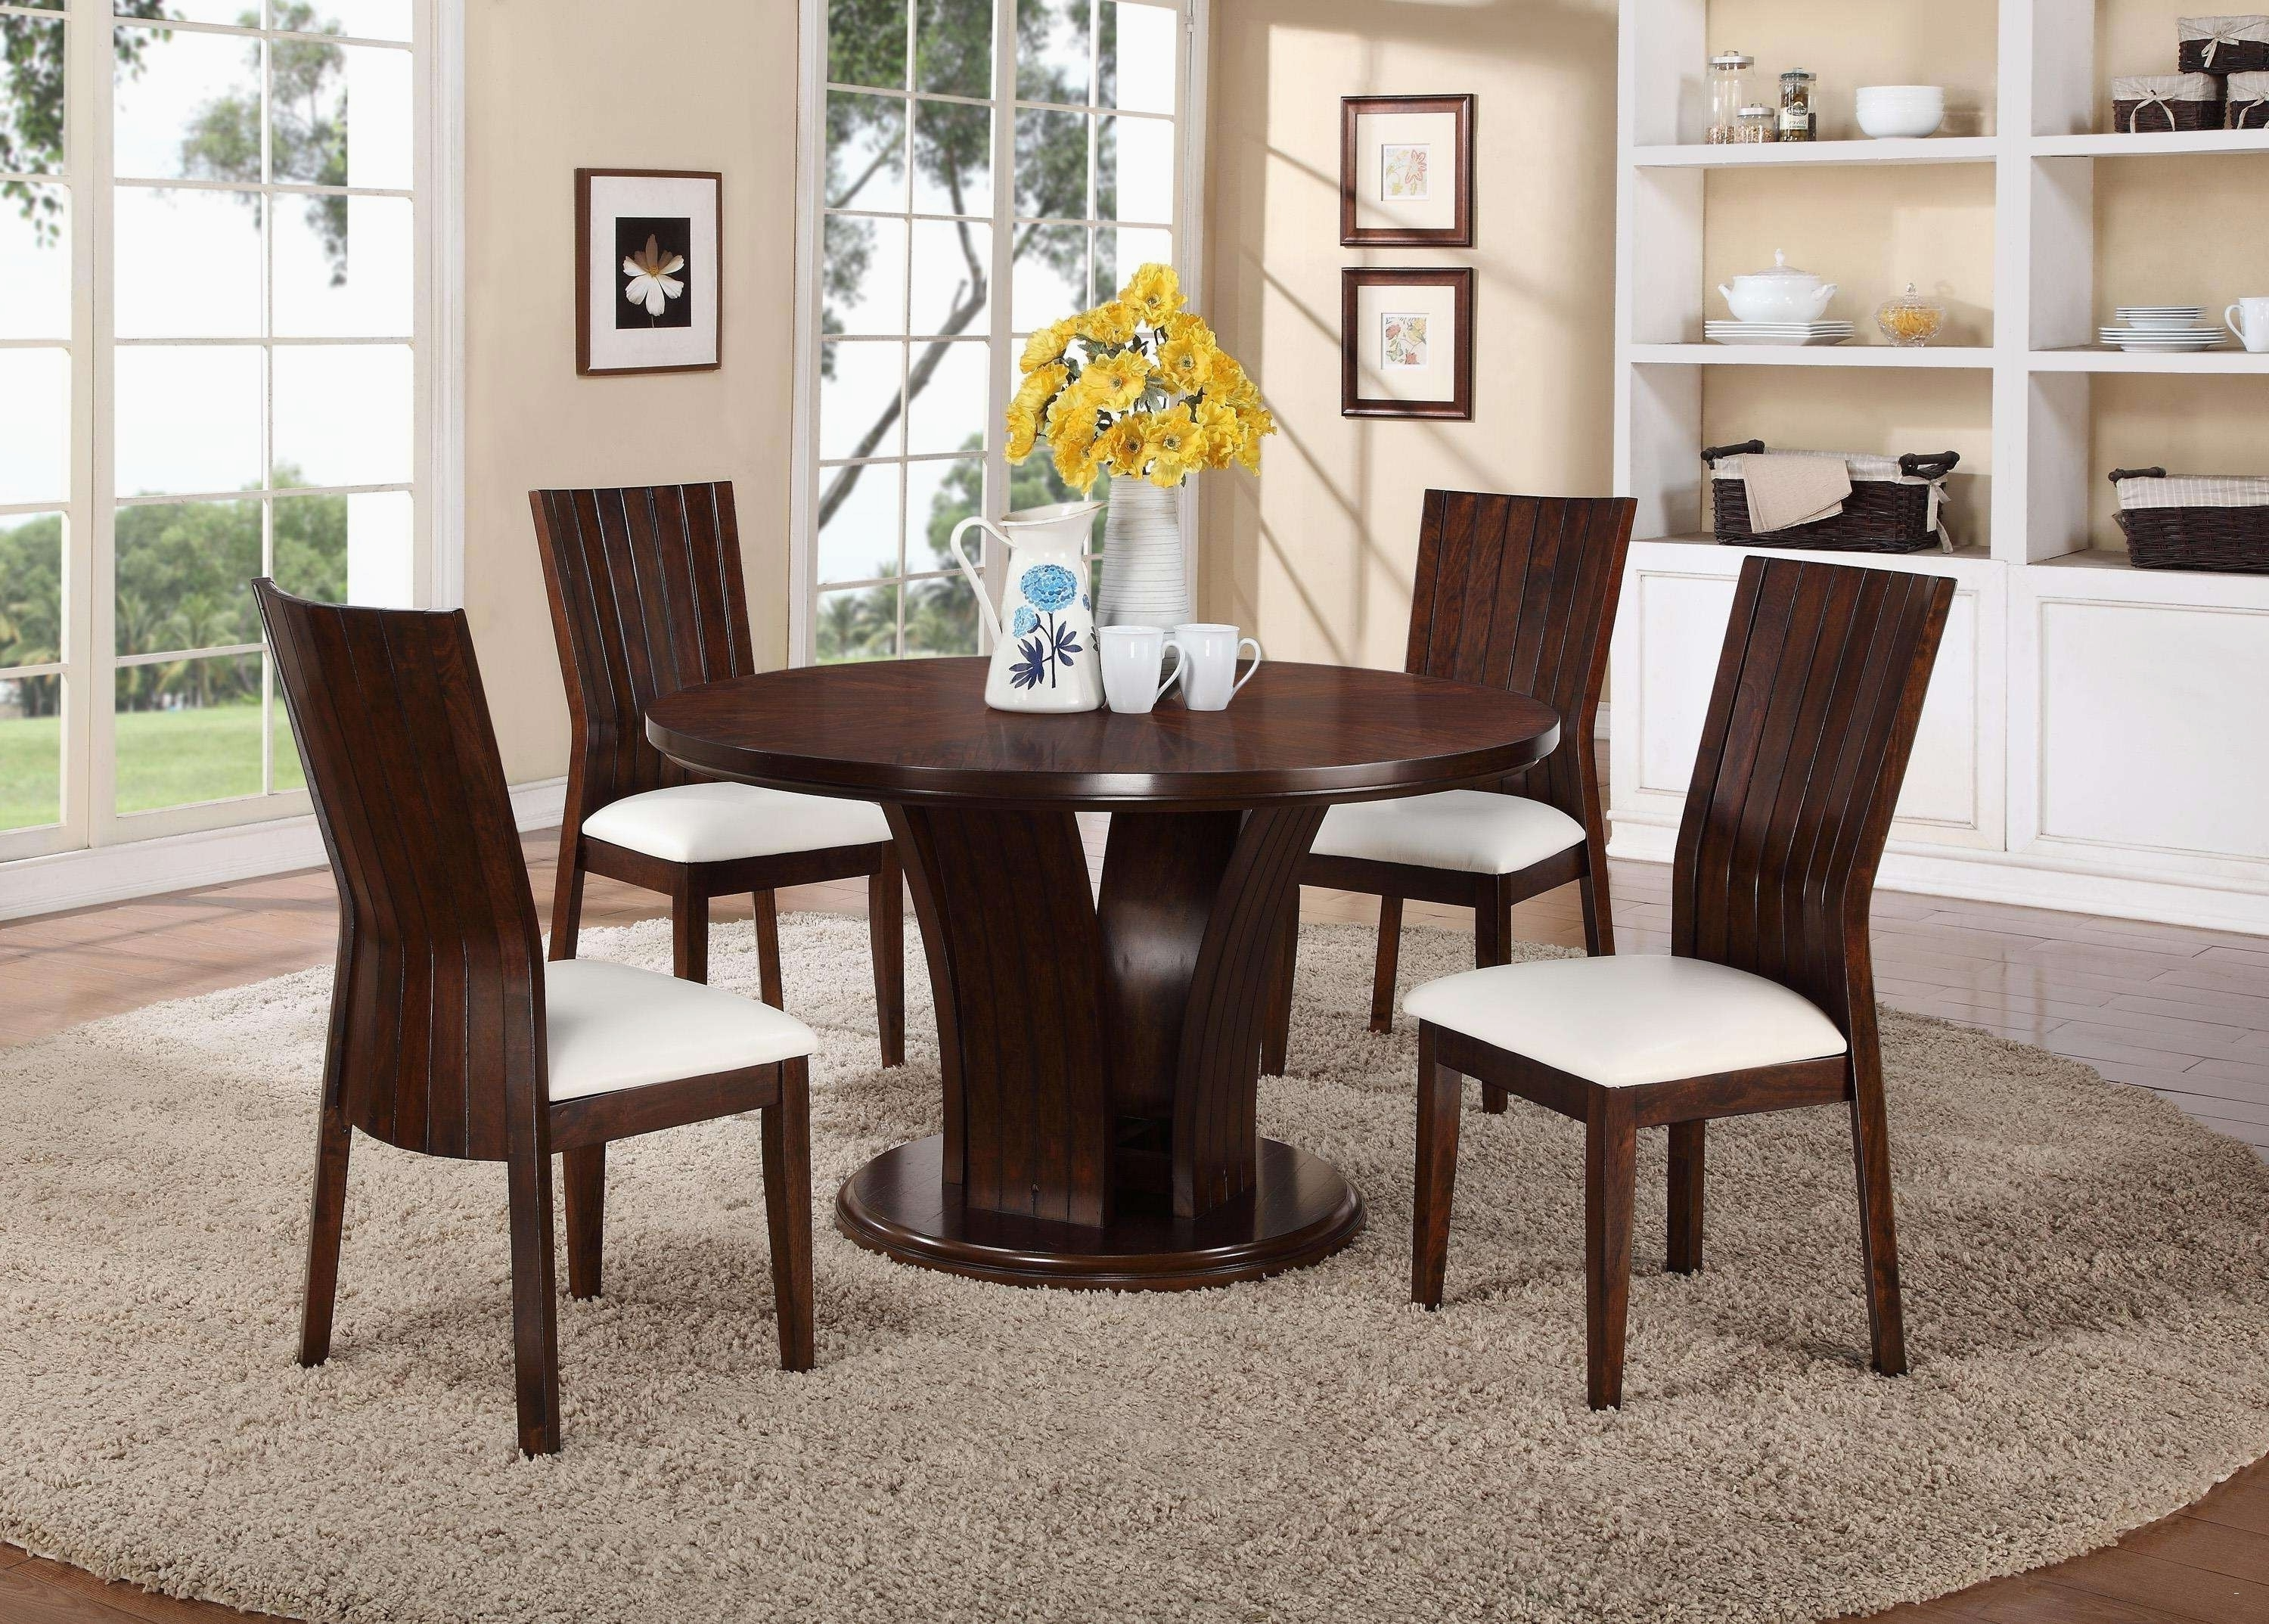 Preferred Stylish Dining Chairs For Stylish Dining Table Unique Simple Wood Dining Room Chairs New (View 10 of 25)